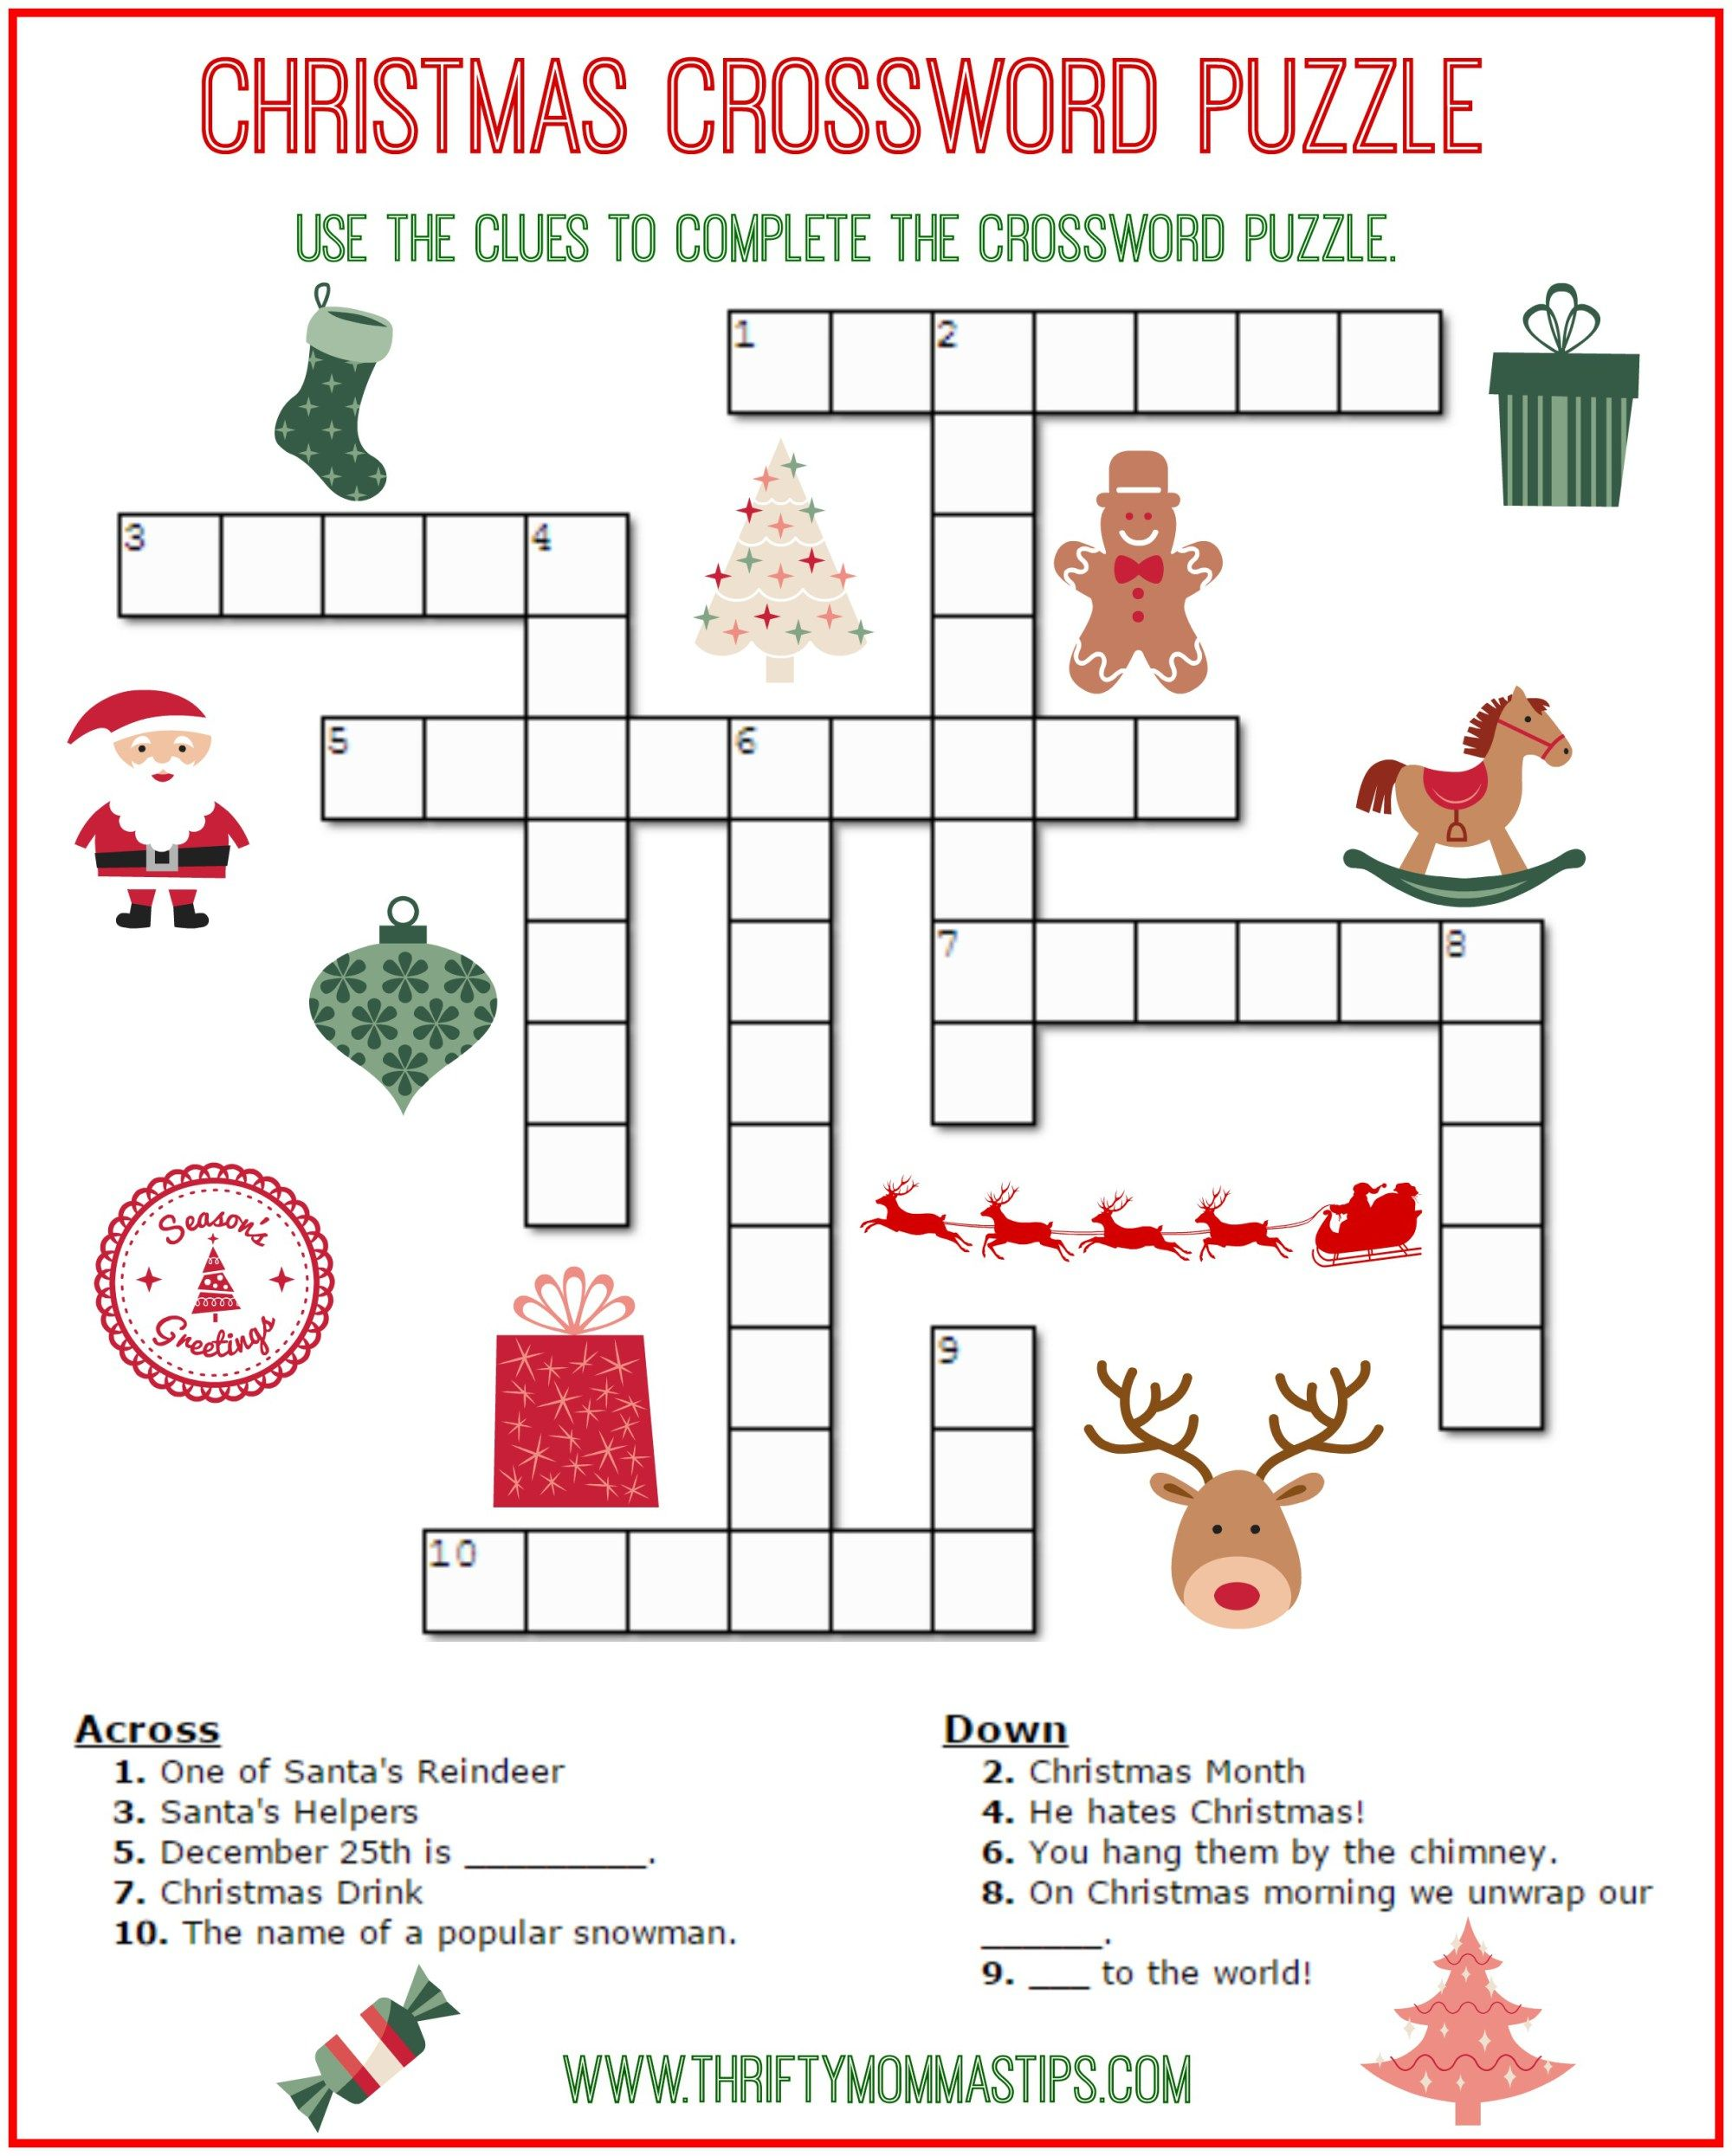 Christmas Crossword Puzzle Printable